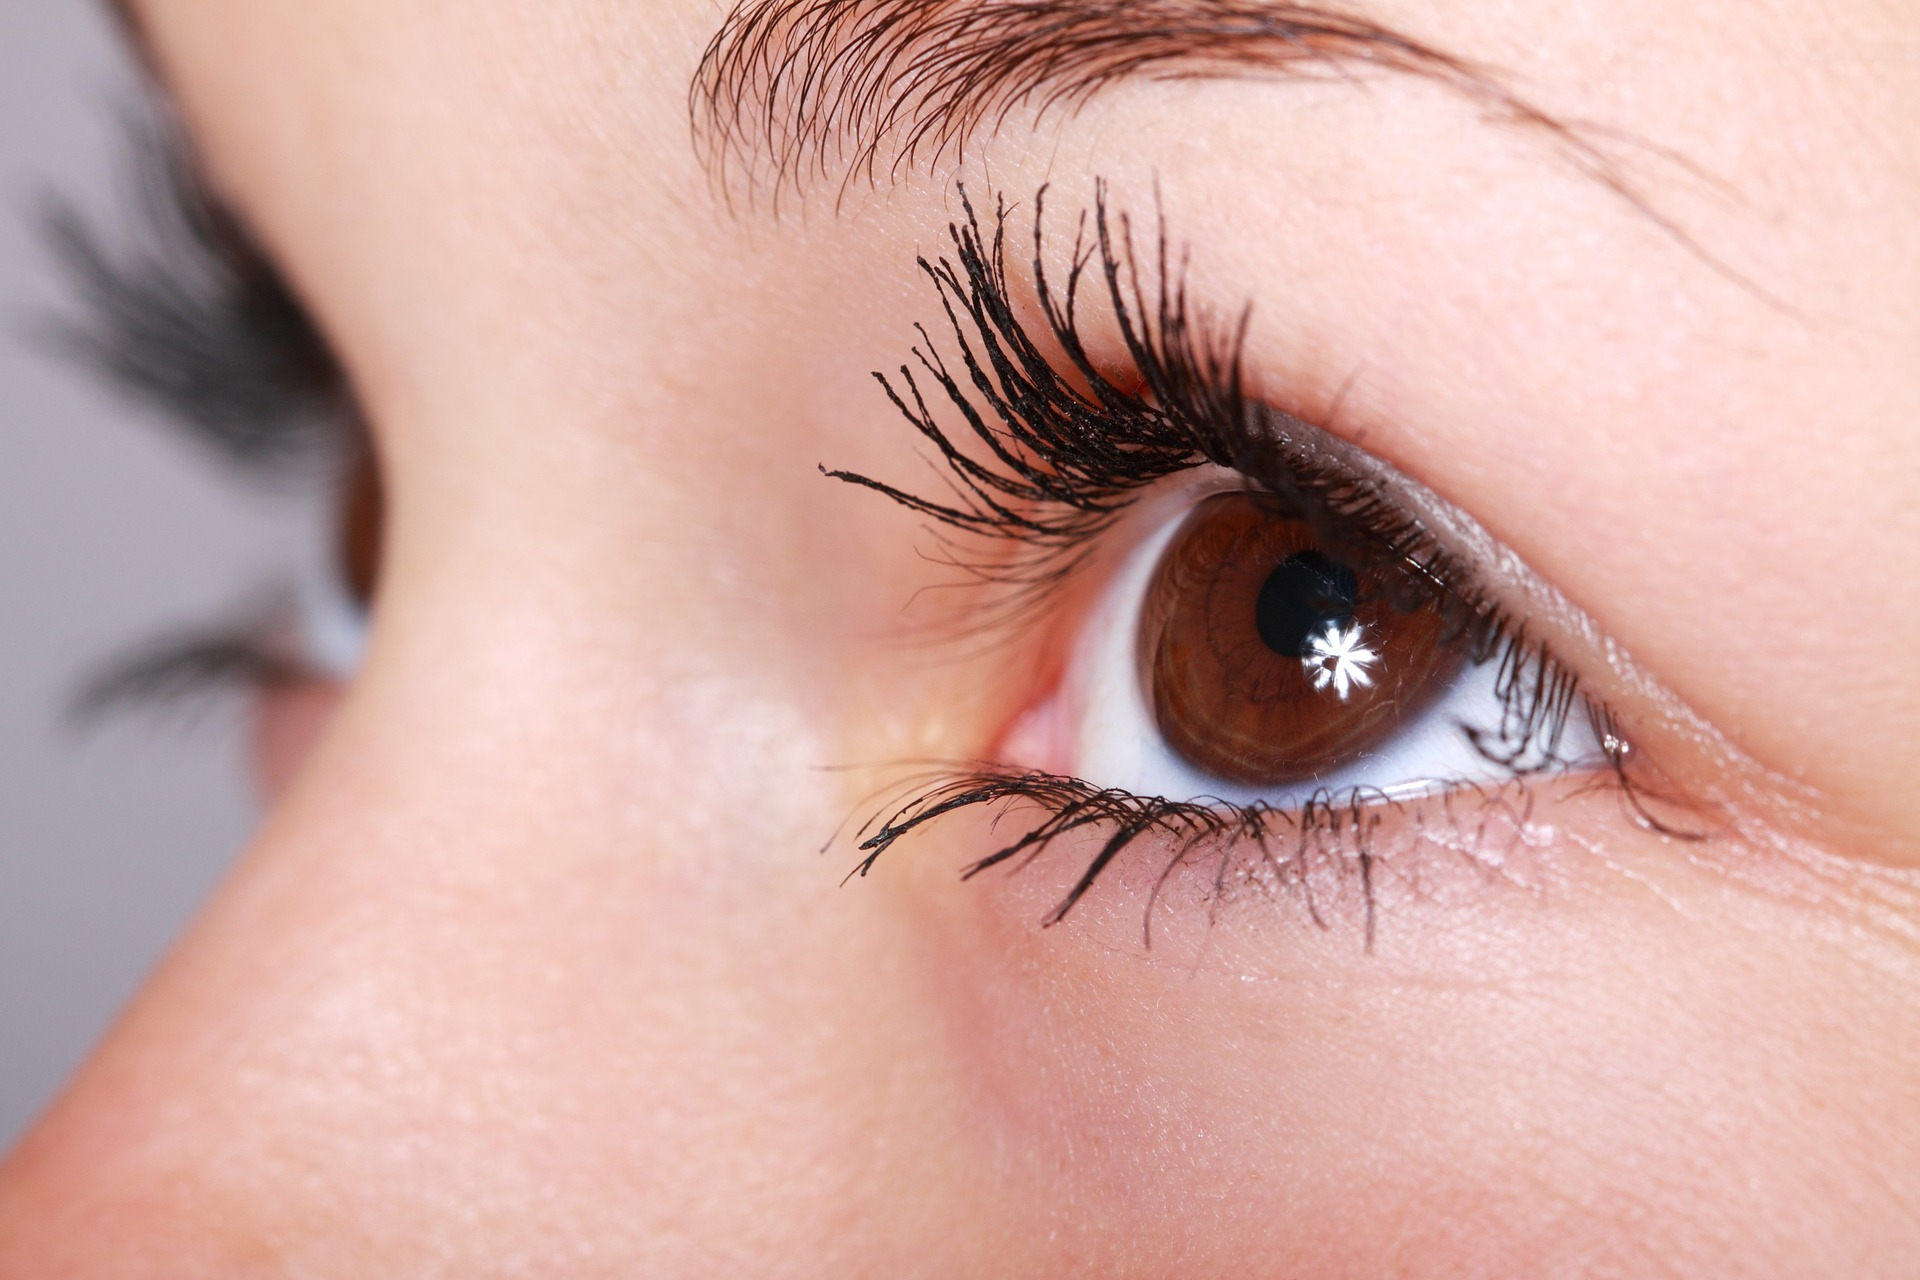 What Do Eyelashes Have to Do With Your Career Goals?